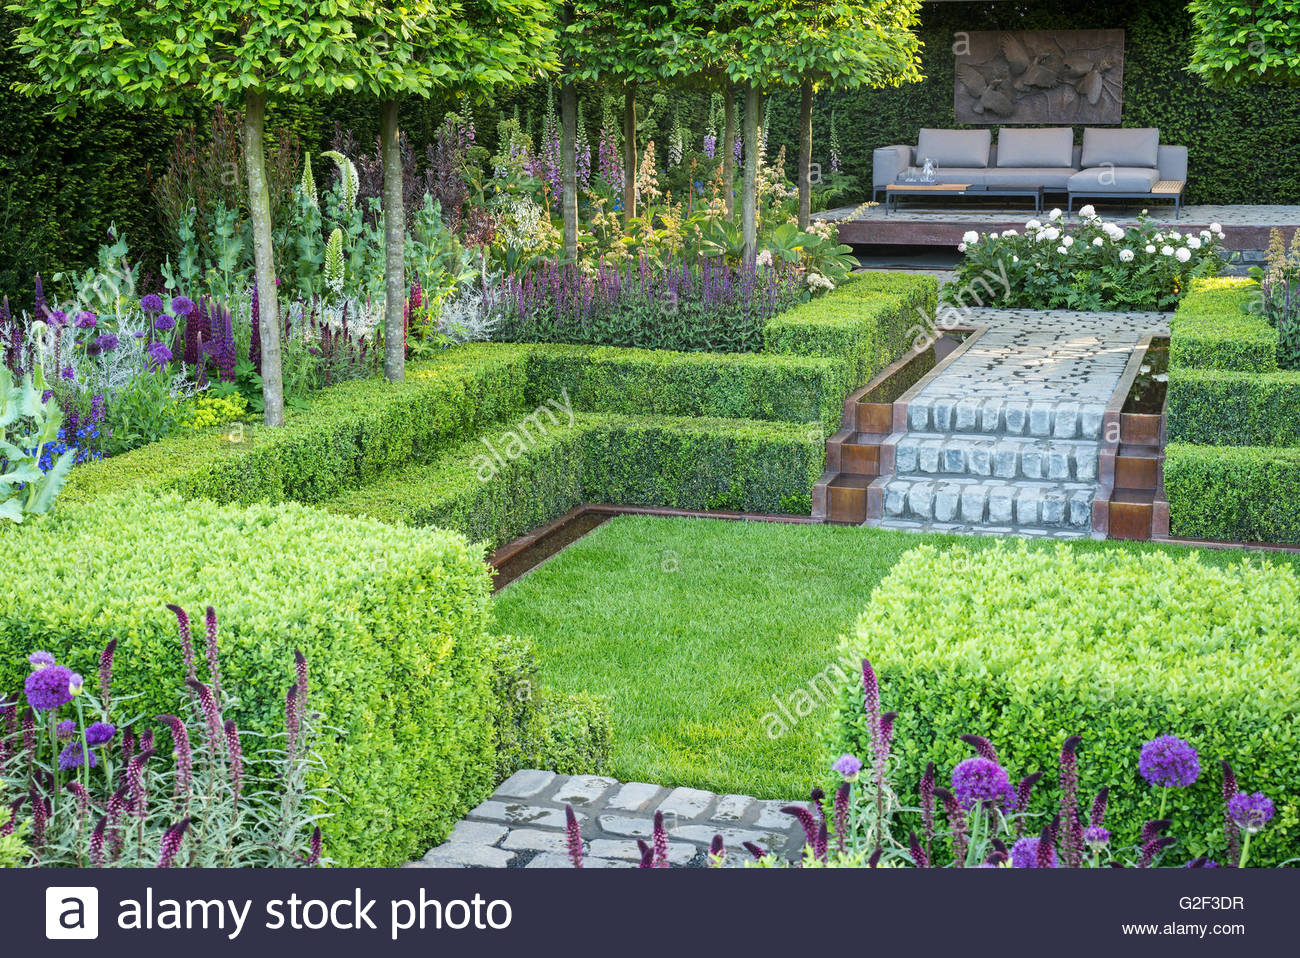 Support the husqvarna garden rhs chelsea flower show for Chelsea flower show garden designs